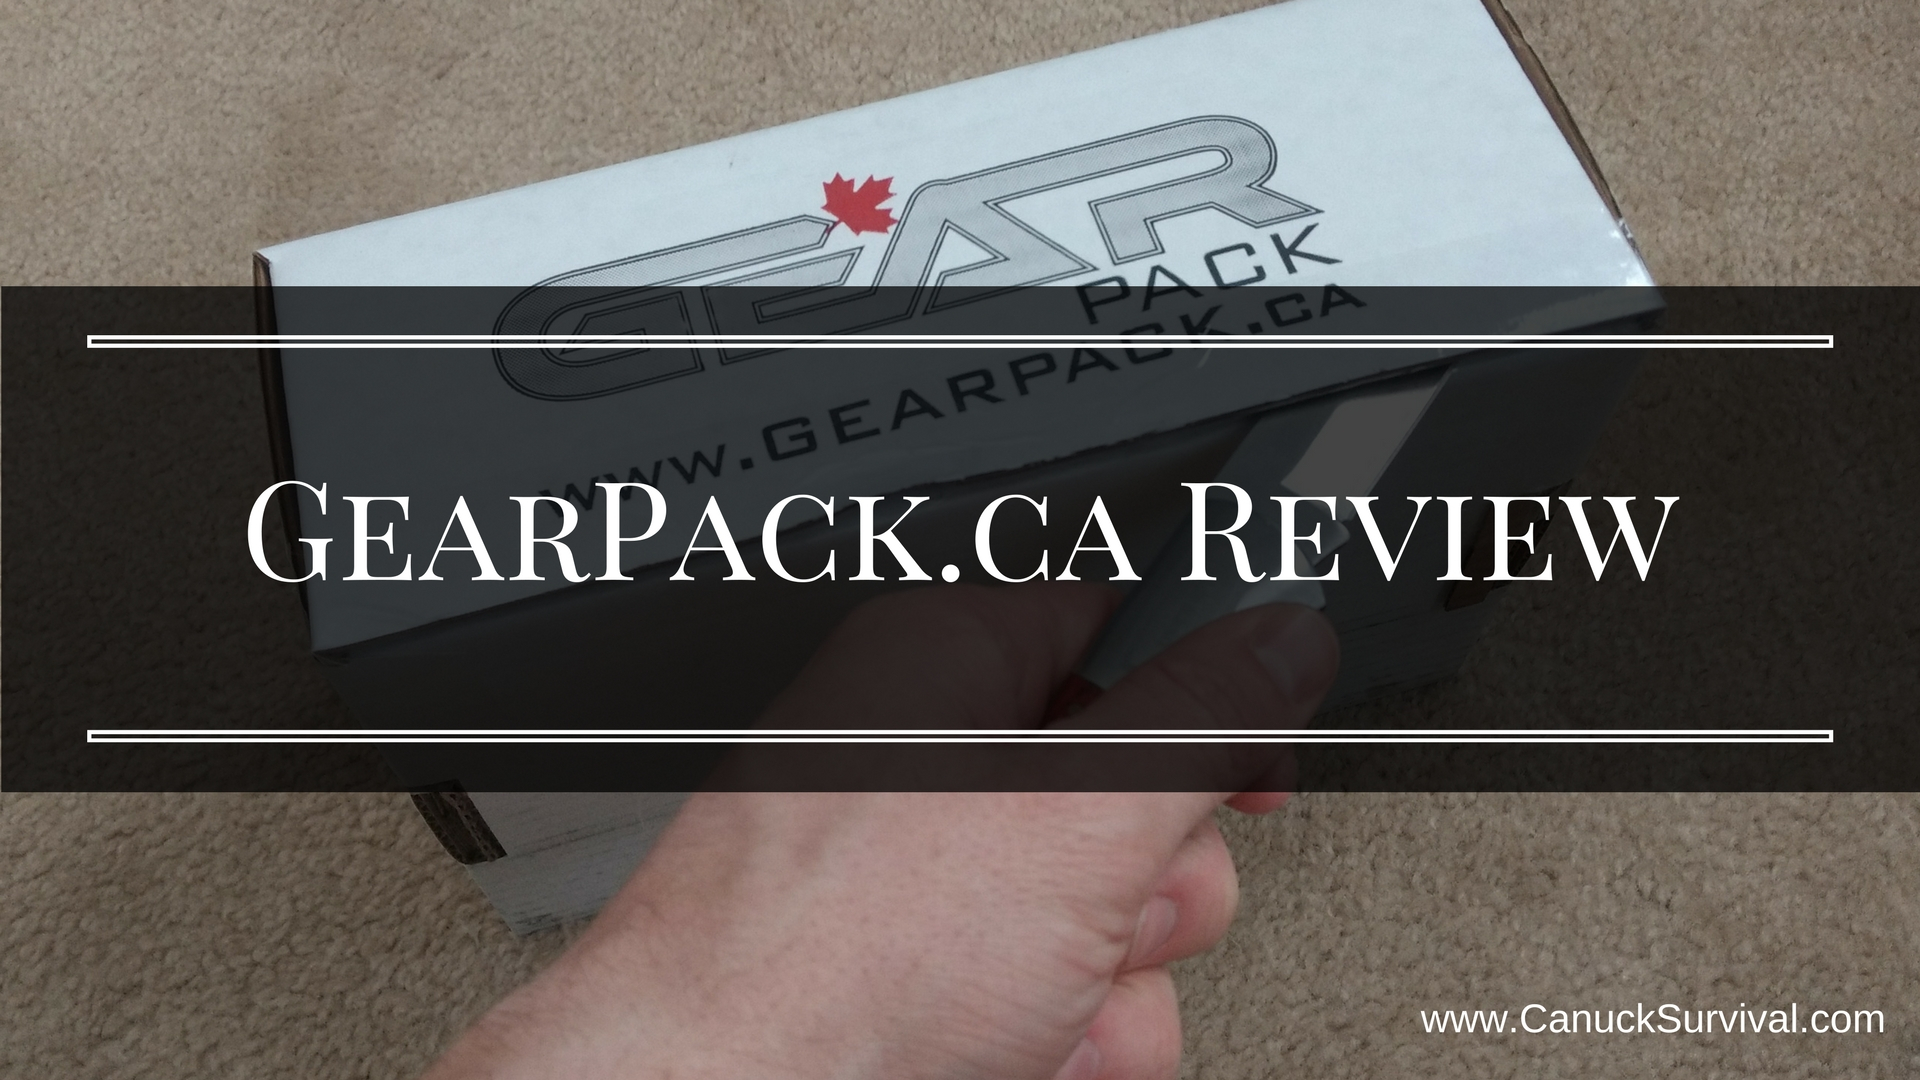 Gear Pack Subscription Box Review